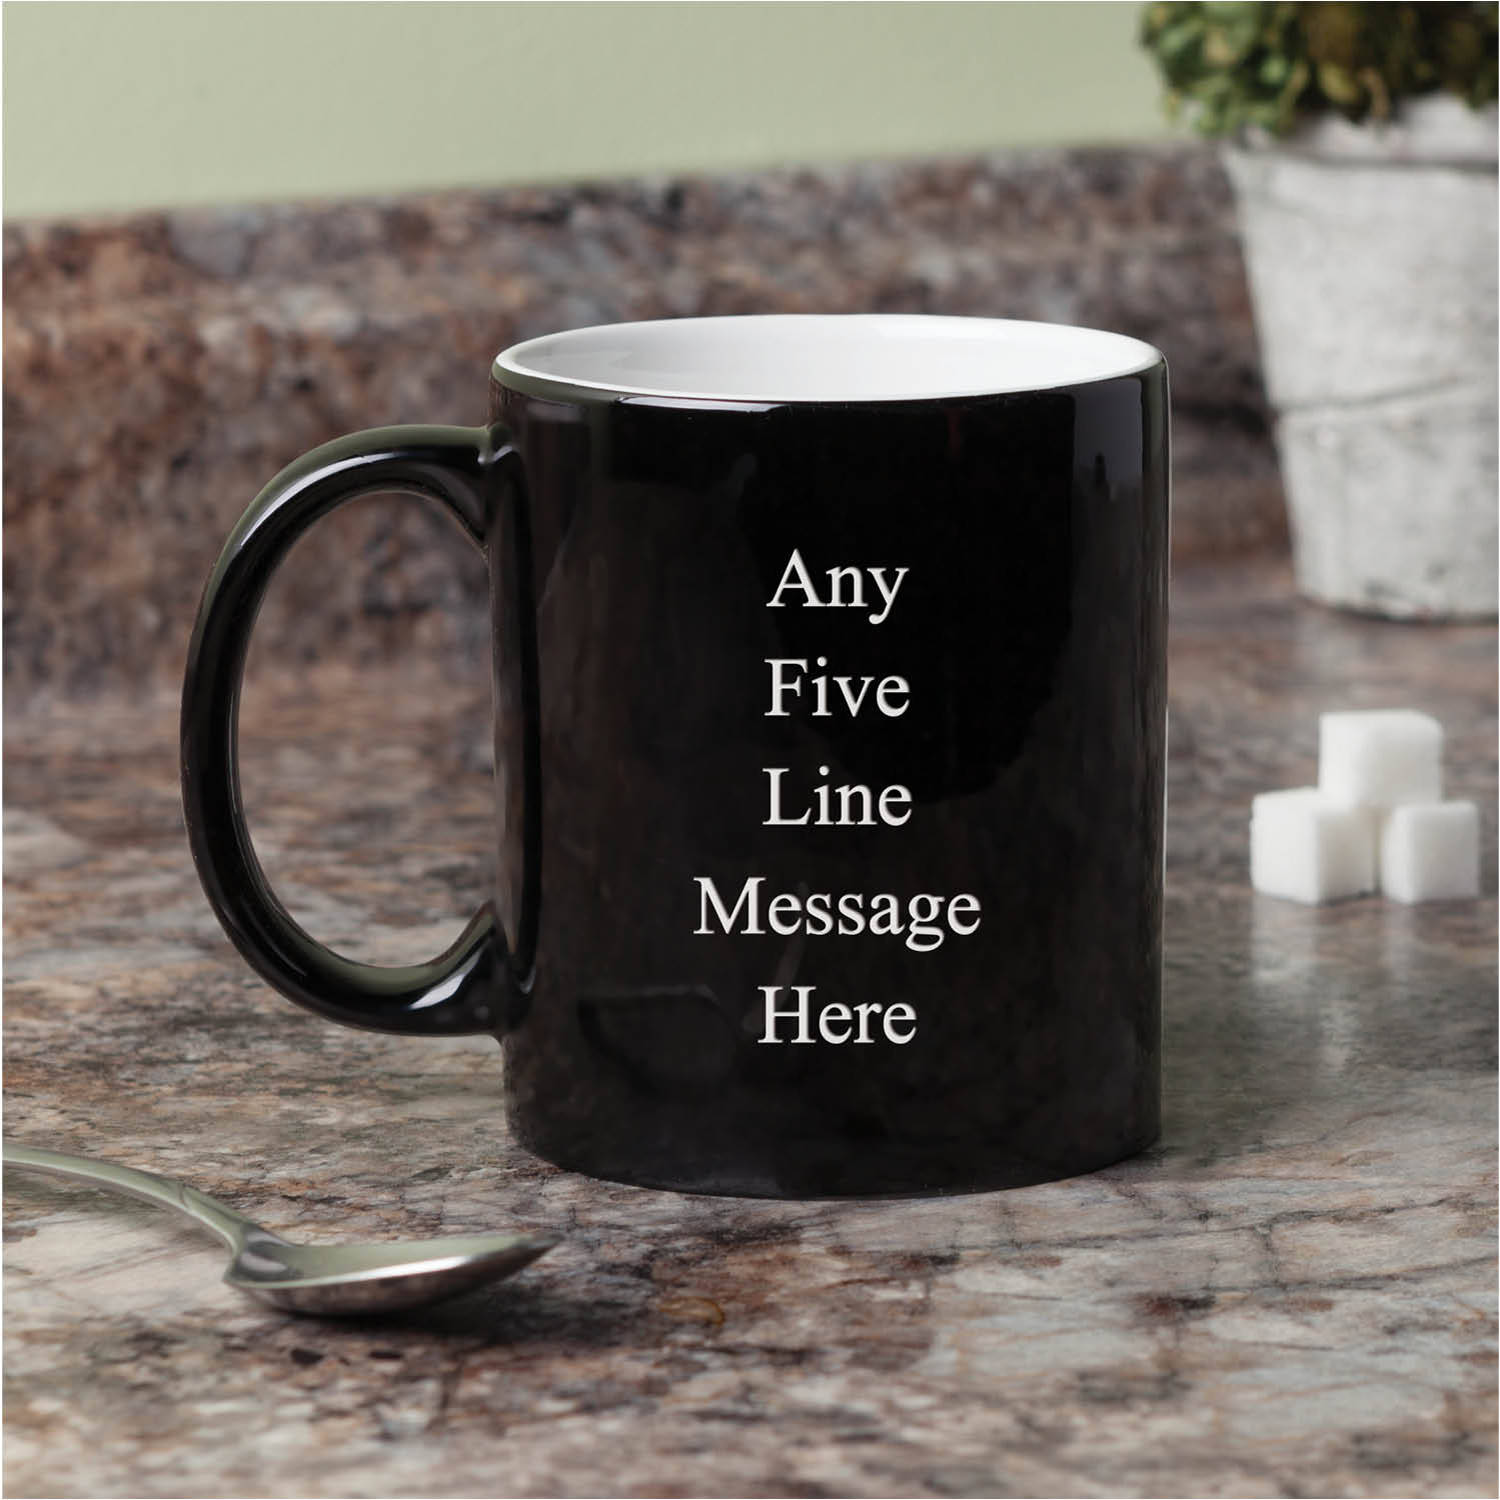 Personalized Any Message Black and White Coffee Mug